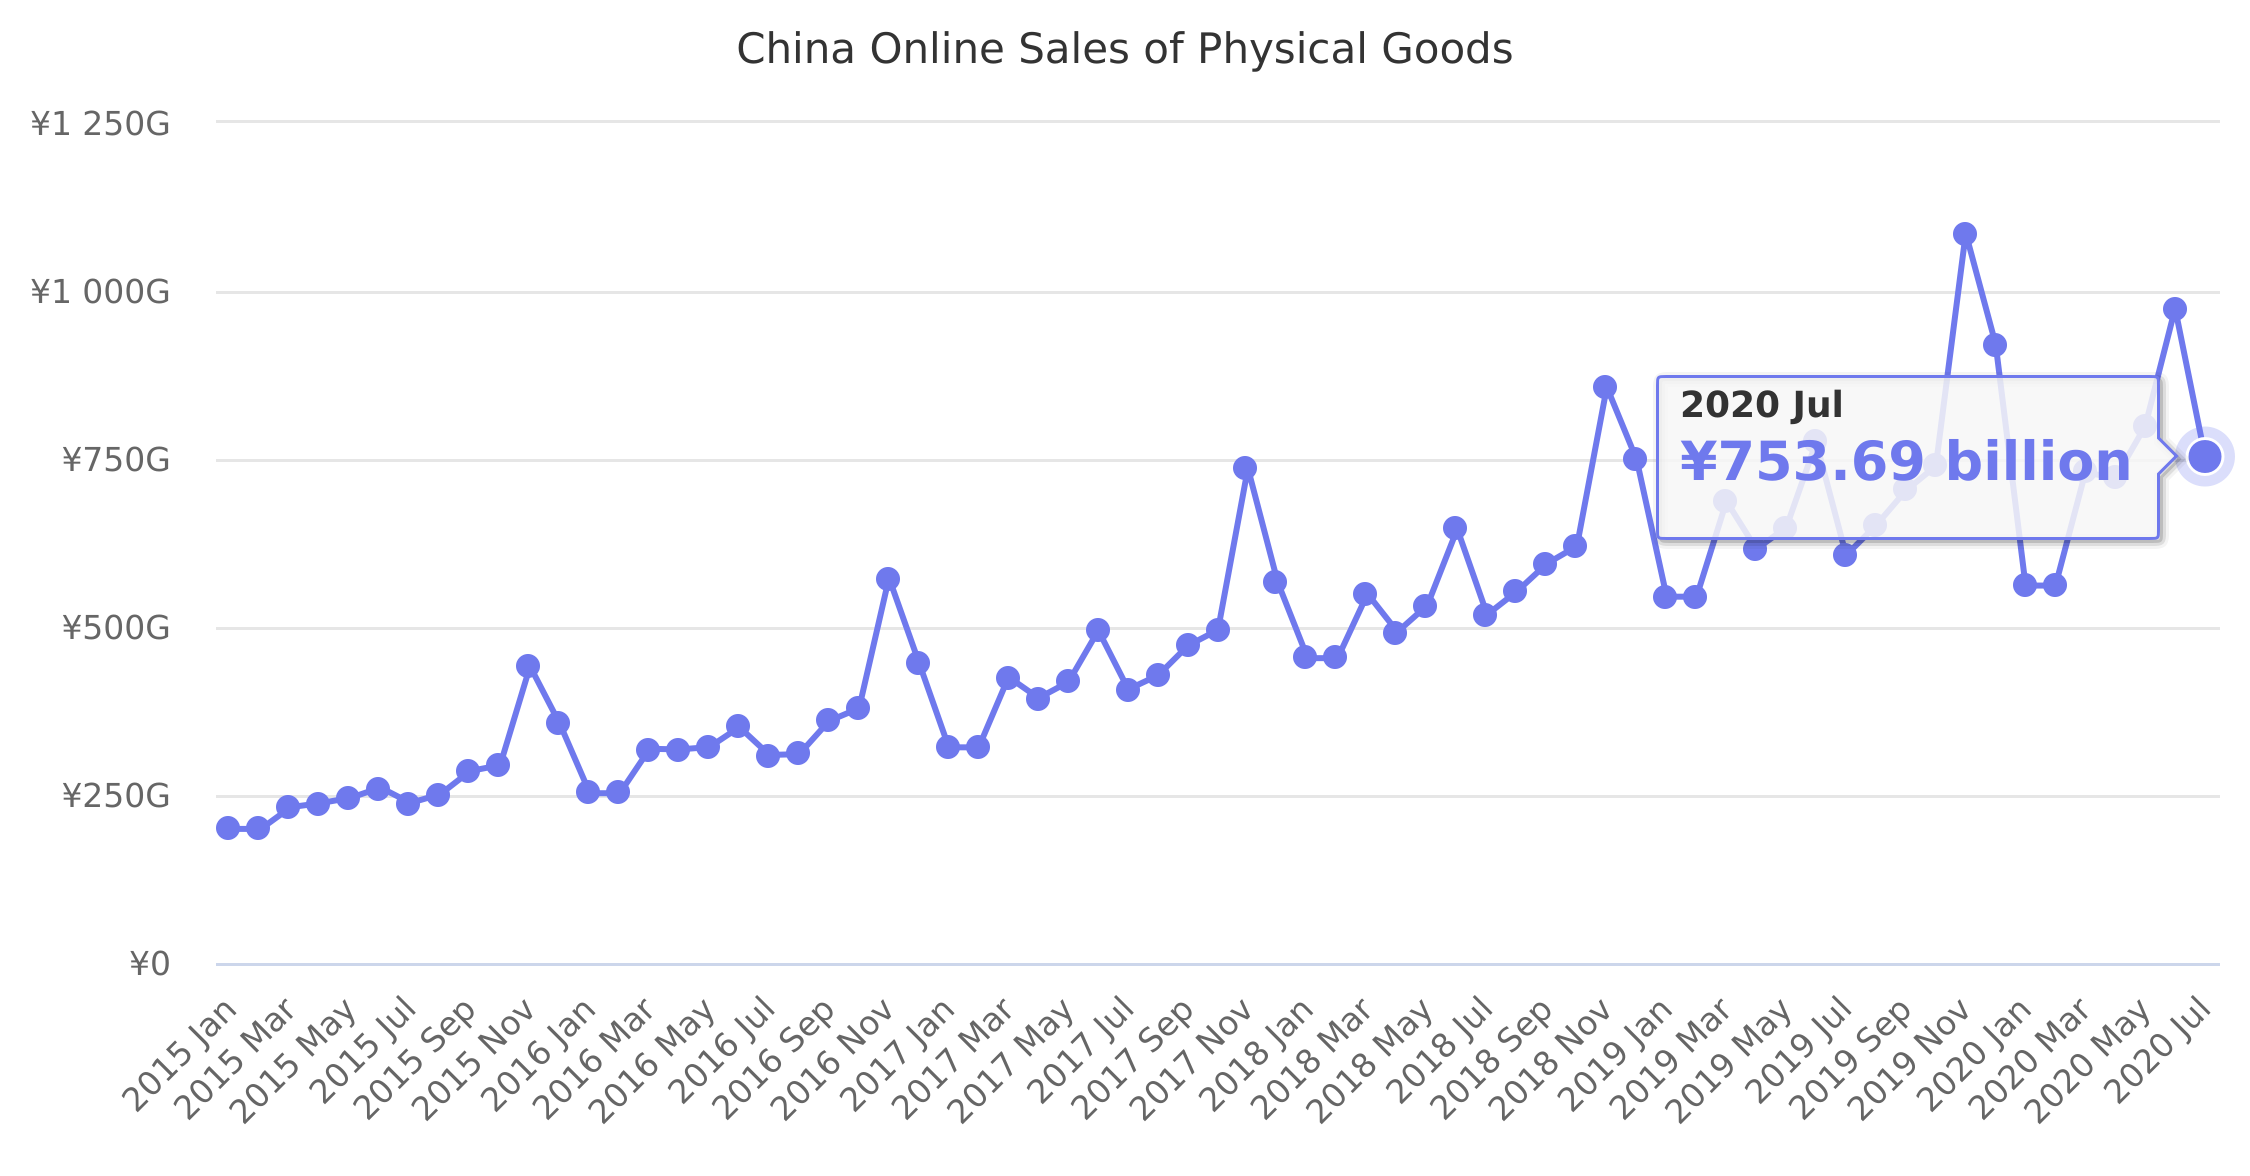 China Online Sales of Physical Goods 2015-2017